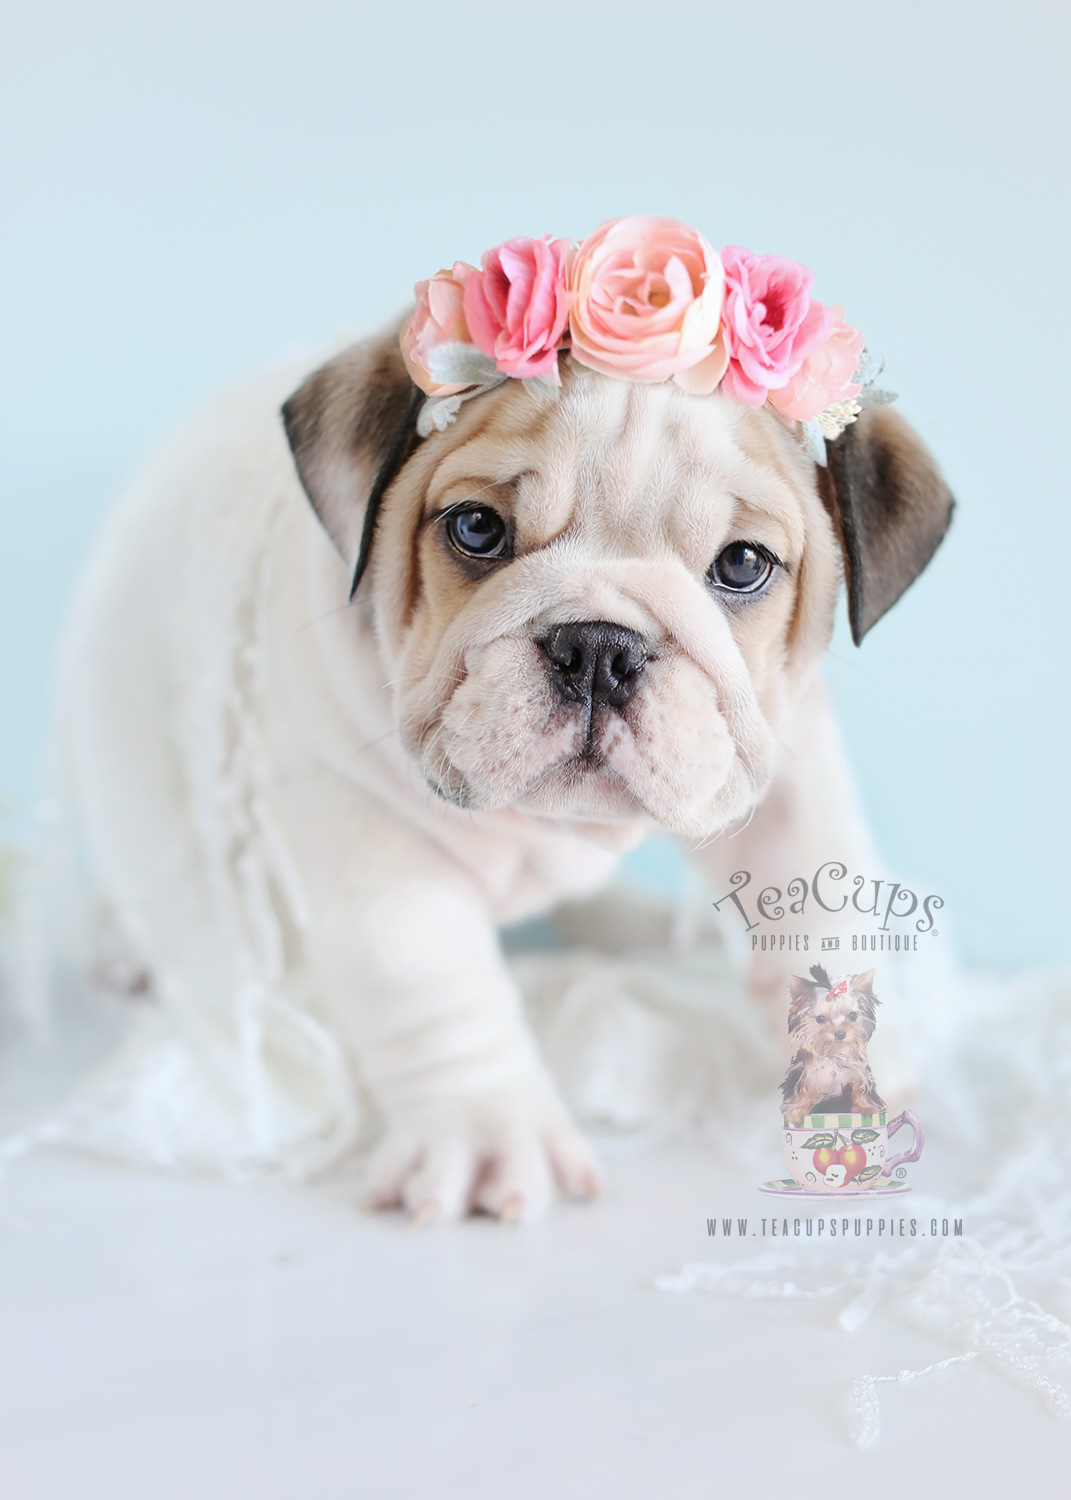 English Bulldog Puppies For Sale Teacups Puppies Boutique